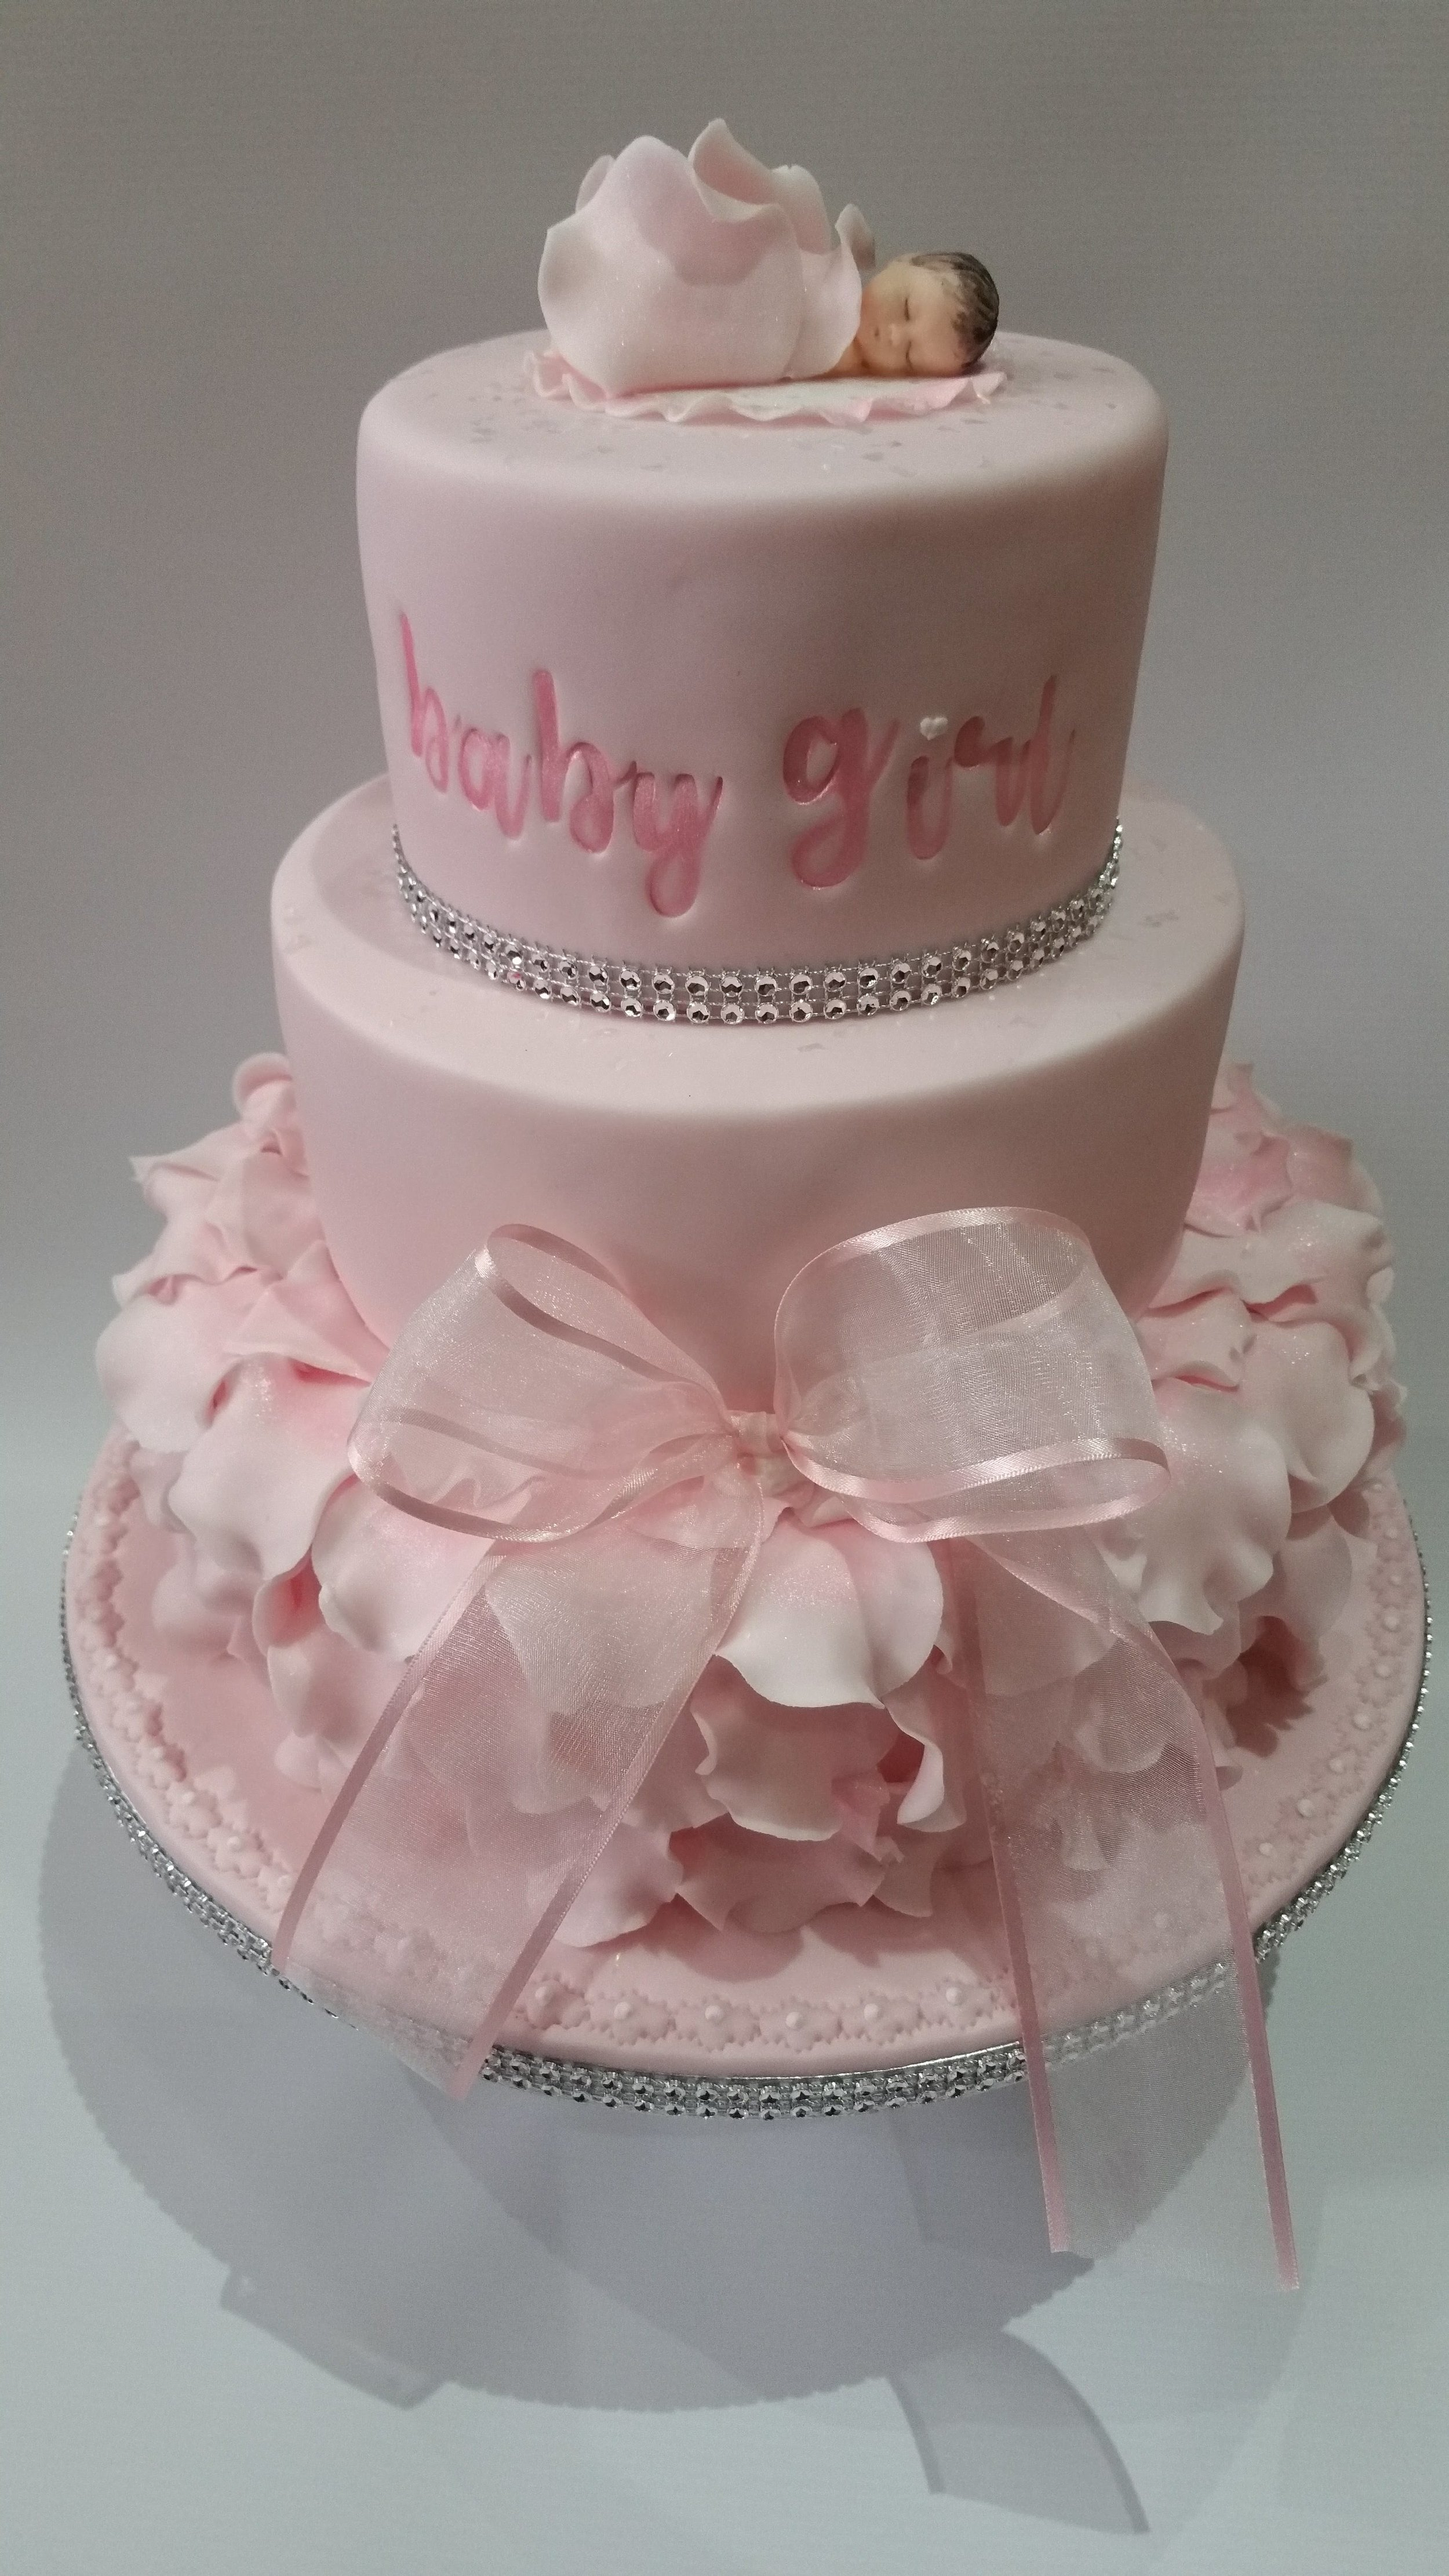 Baby shower - A really pretty cake with hand made rose petals, bow and baby girl model, with trendy hand painted writing and diamante bands.